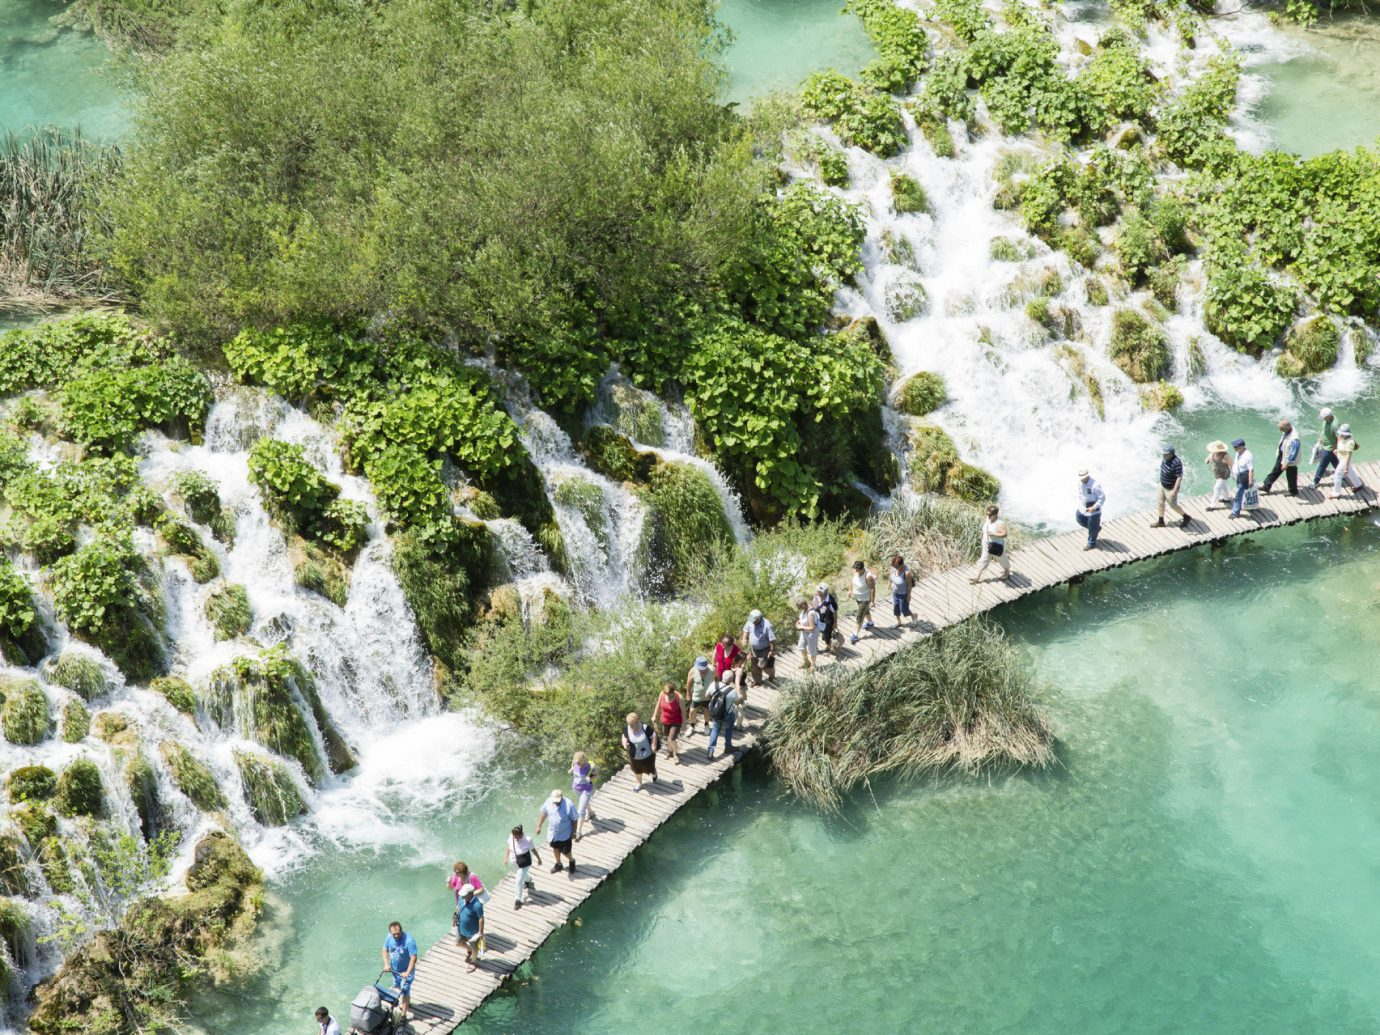 National Parks Offbeat Travel Tips Trip Ideas tree water outdoor River body of water watercourse Nature tourism rapid waterway water feature wave surrounded